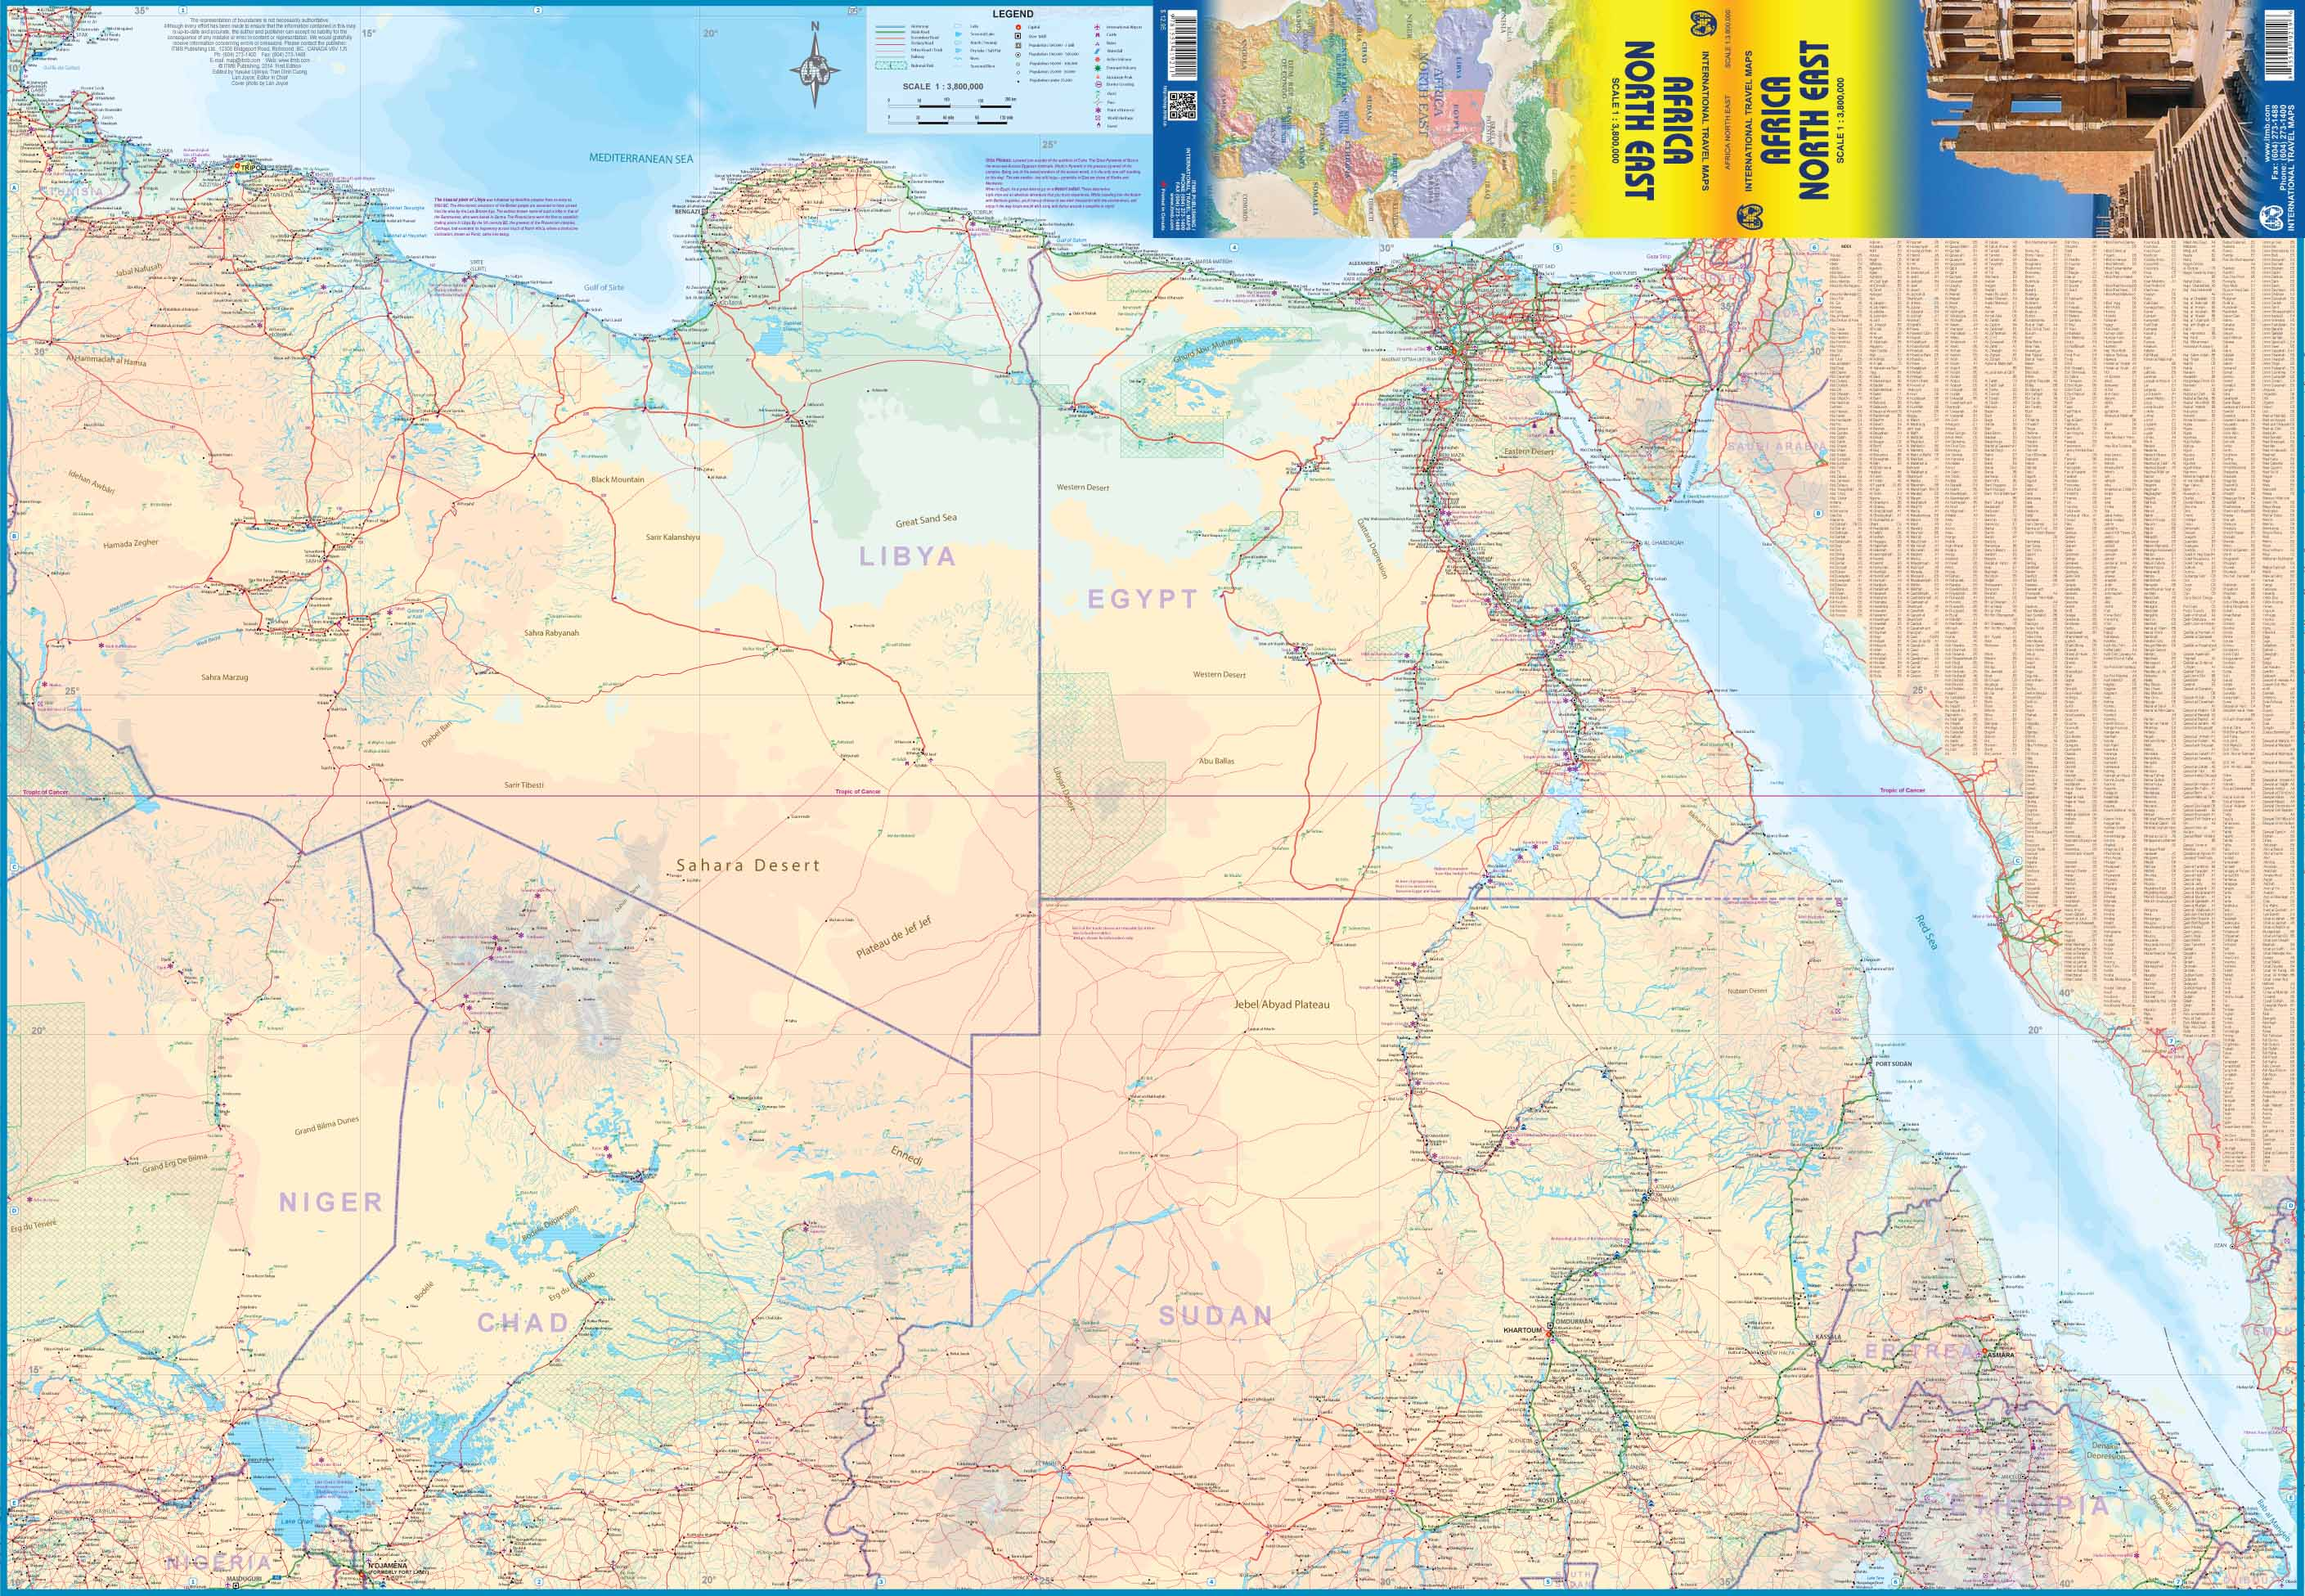 Maps For Travel City Maps Road Maps Guides Globes Topographic - Us government map of mongolia 1 500000